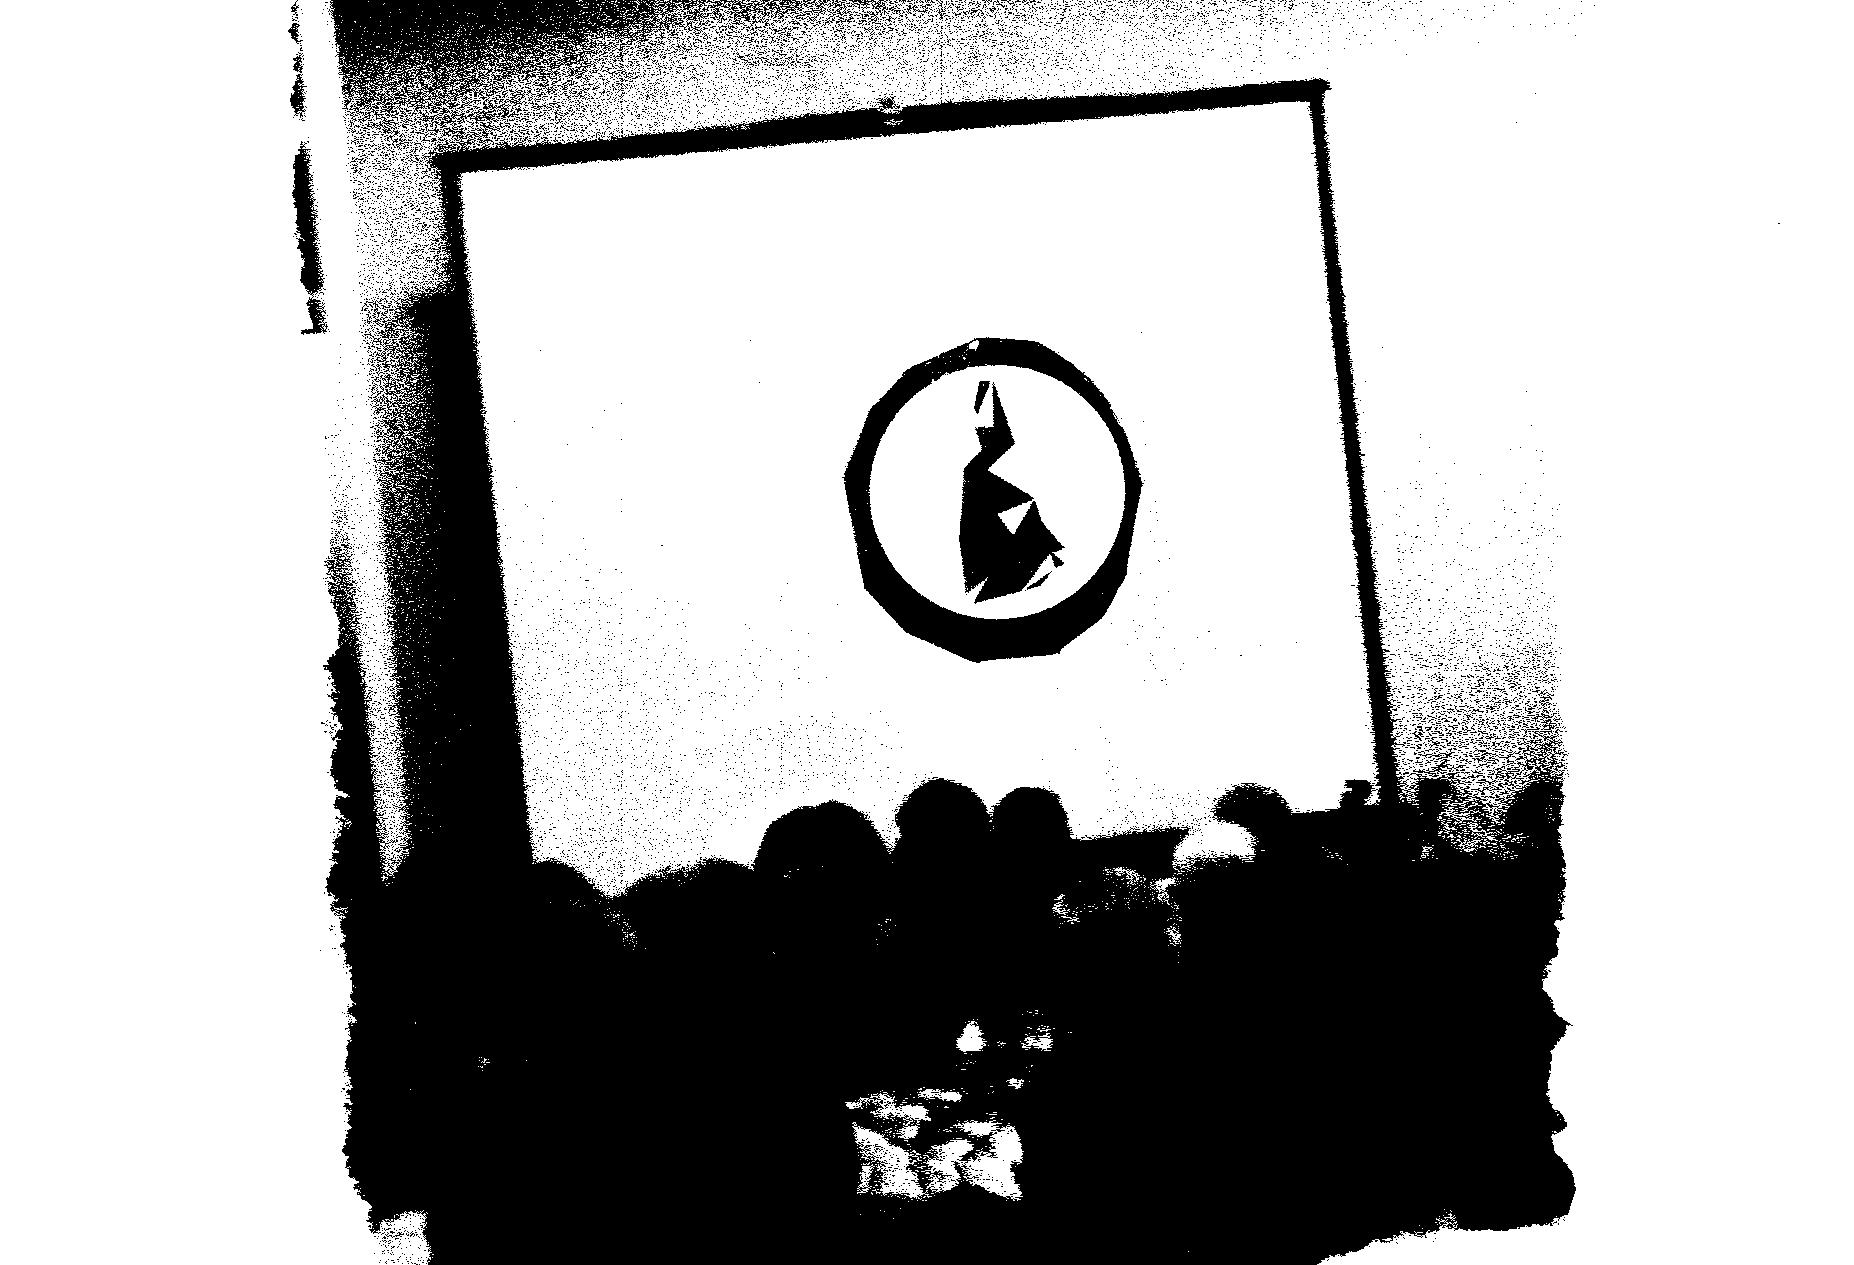 NH Liberty Forum: Snowden, Ulbricht, and the Future of the Free State Project